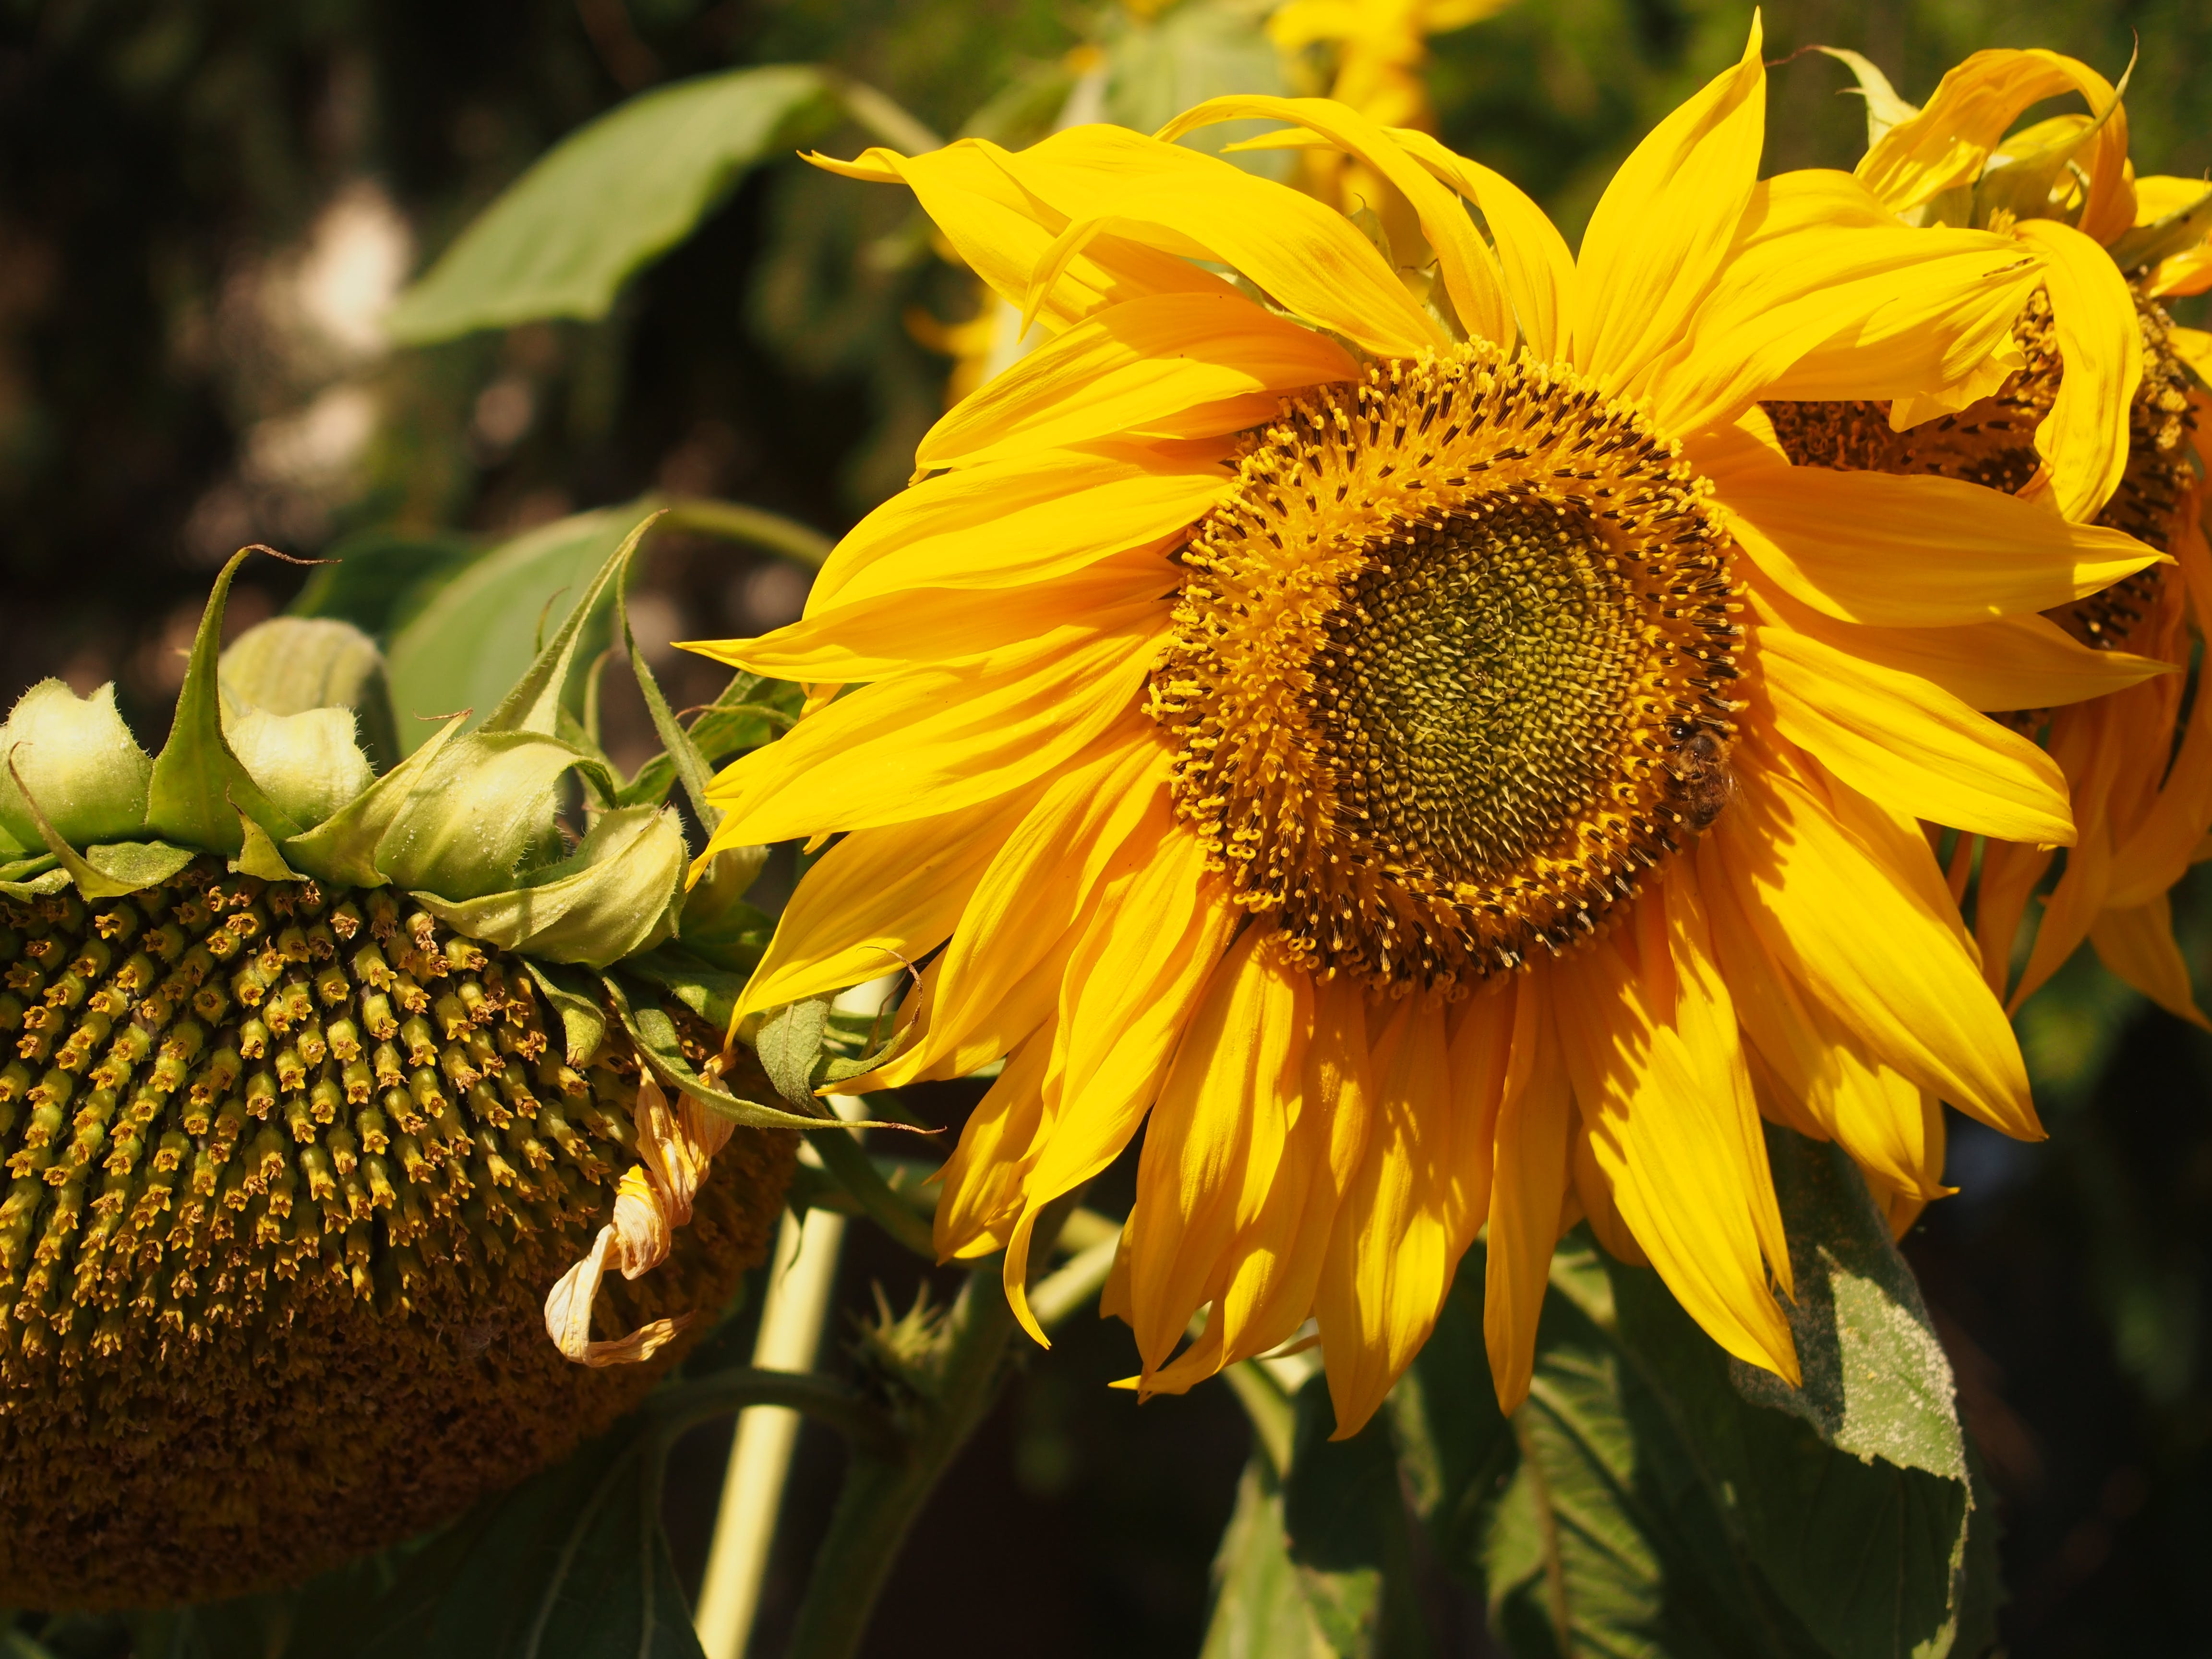 Yellow Sunflower in Closeup Photography